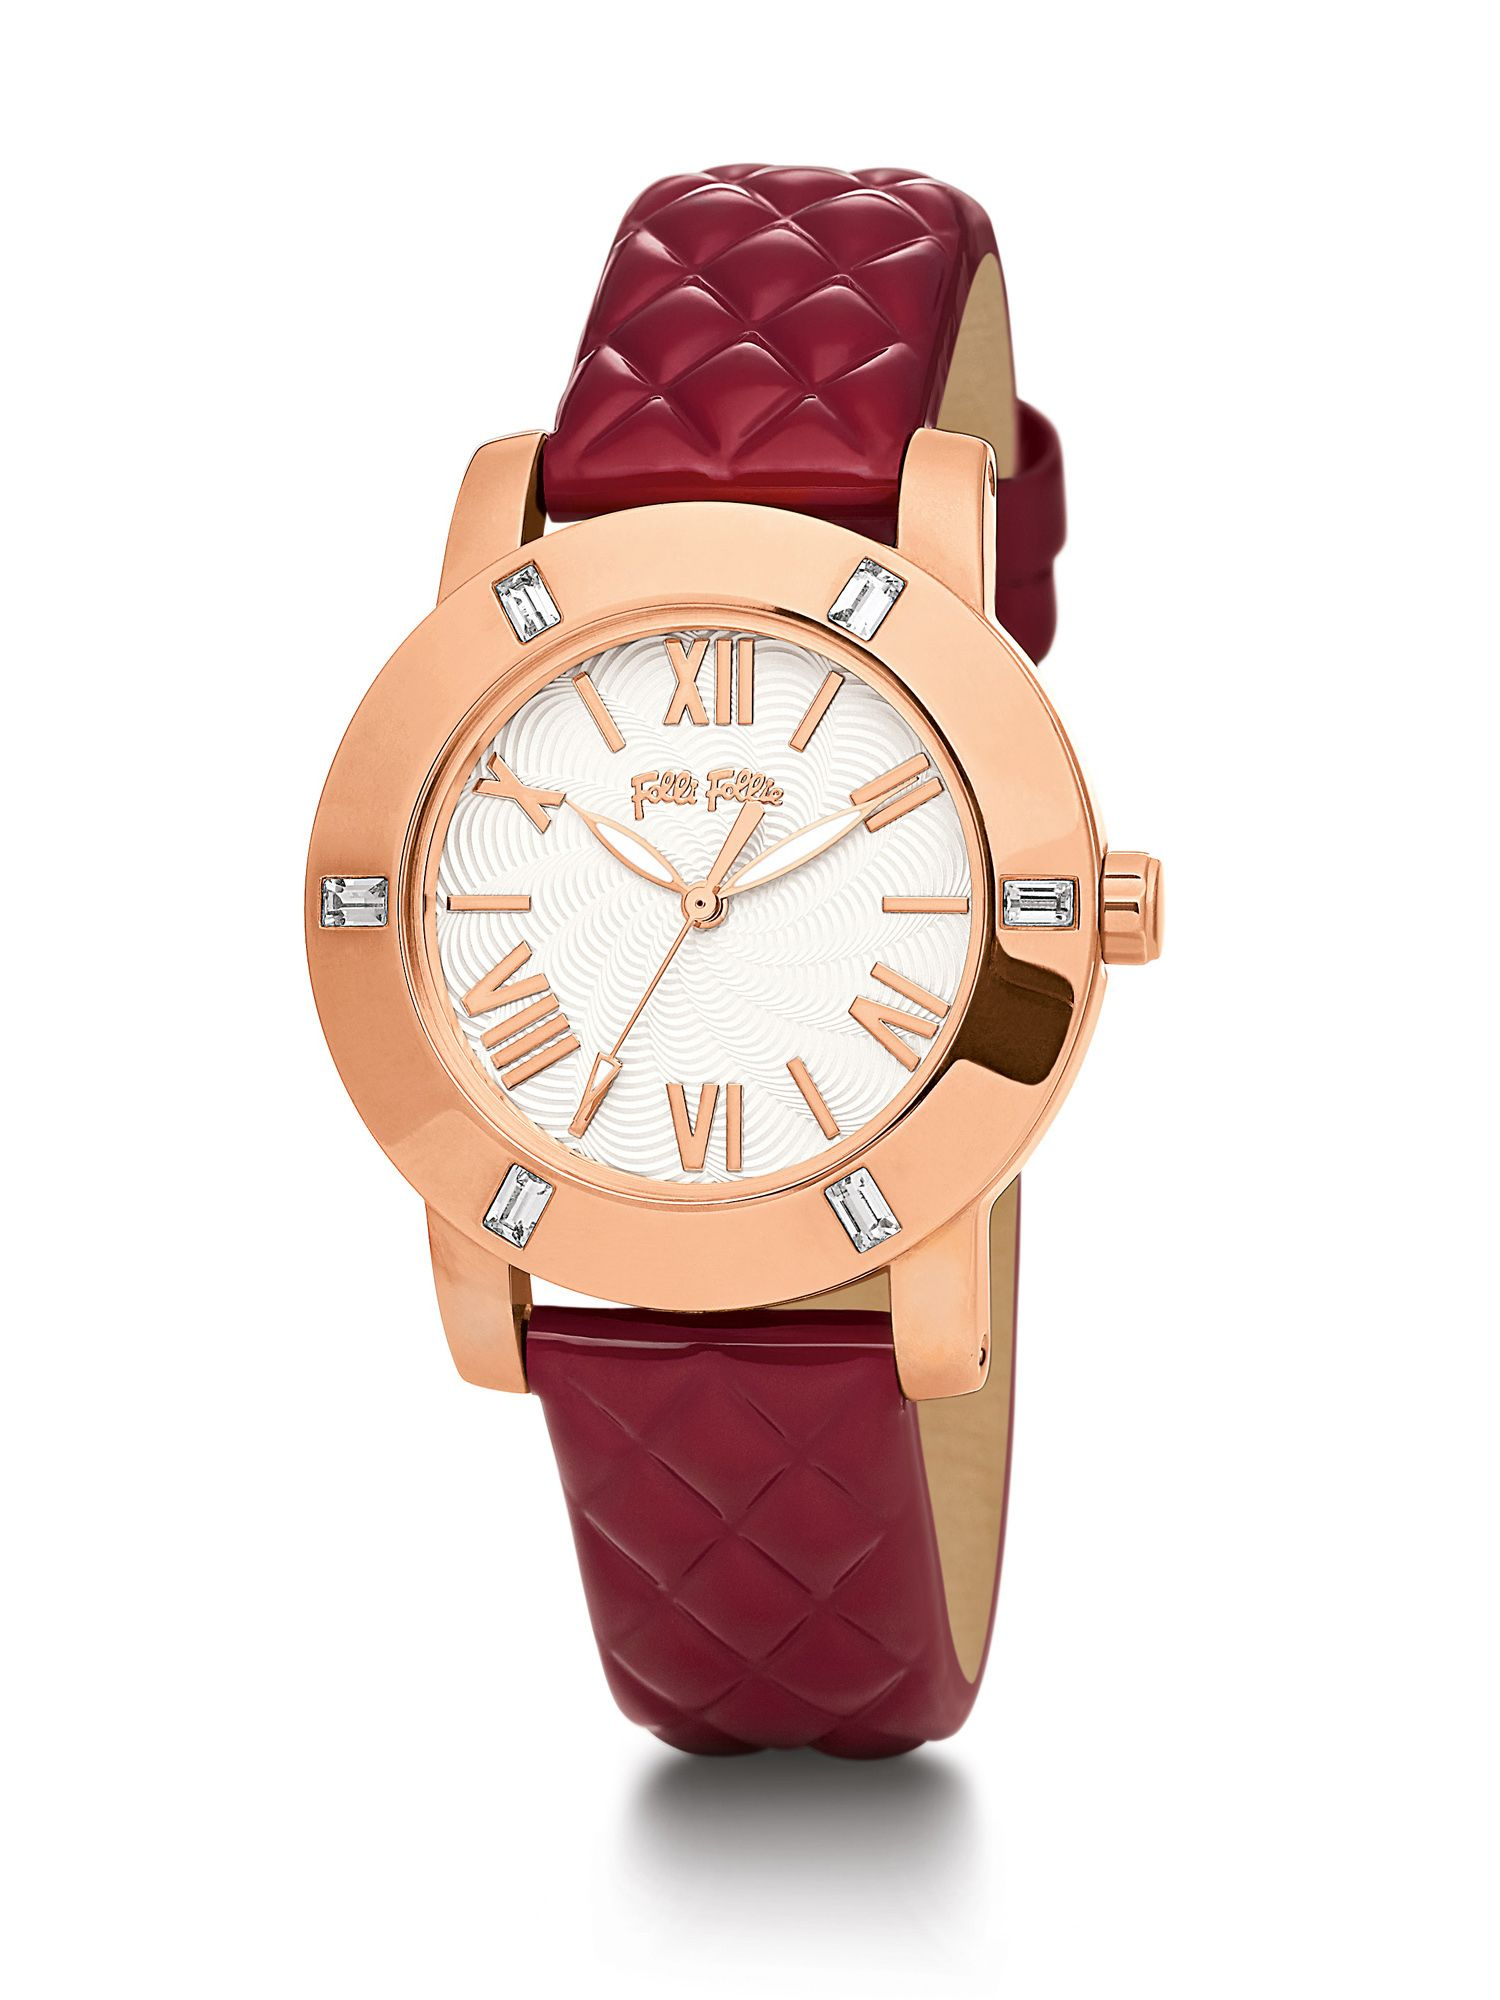 Folli Follie Donatella Watch with Red Leather Strap, Red